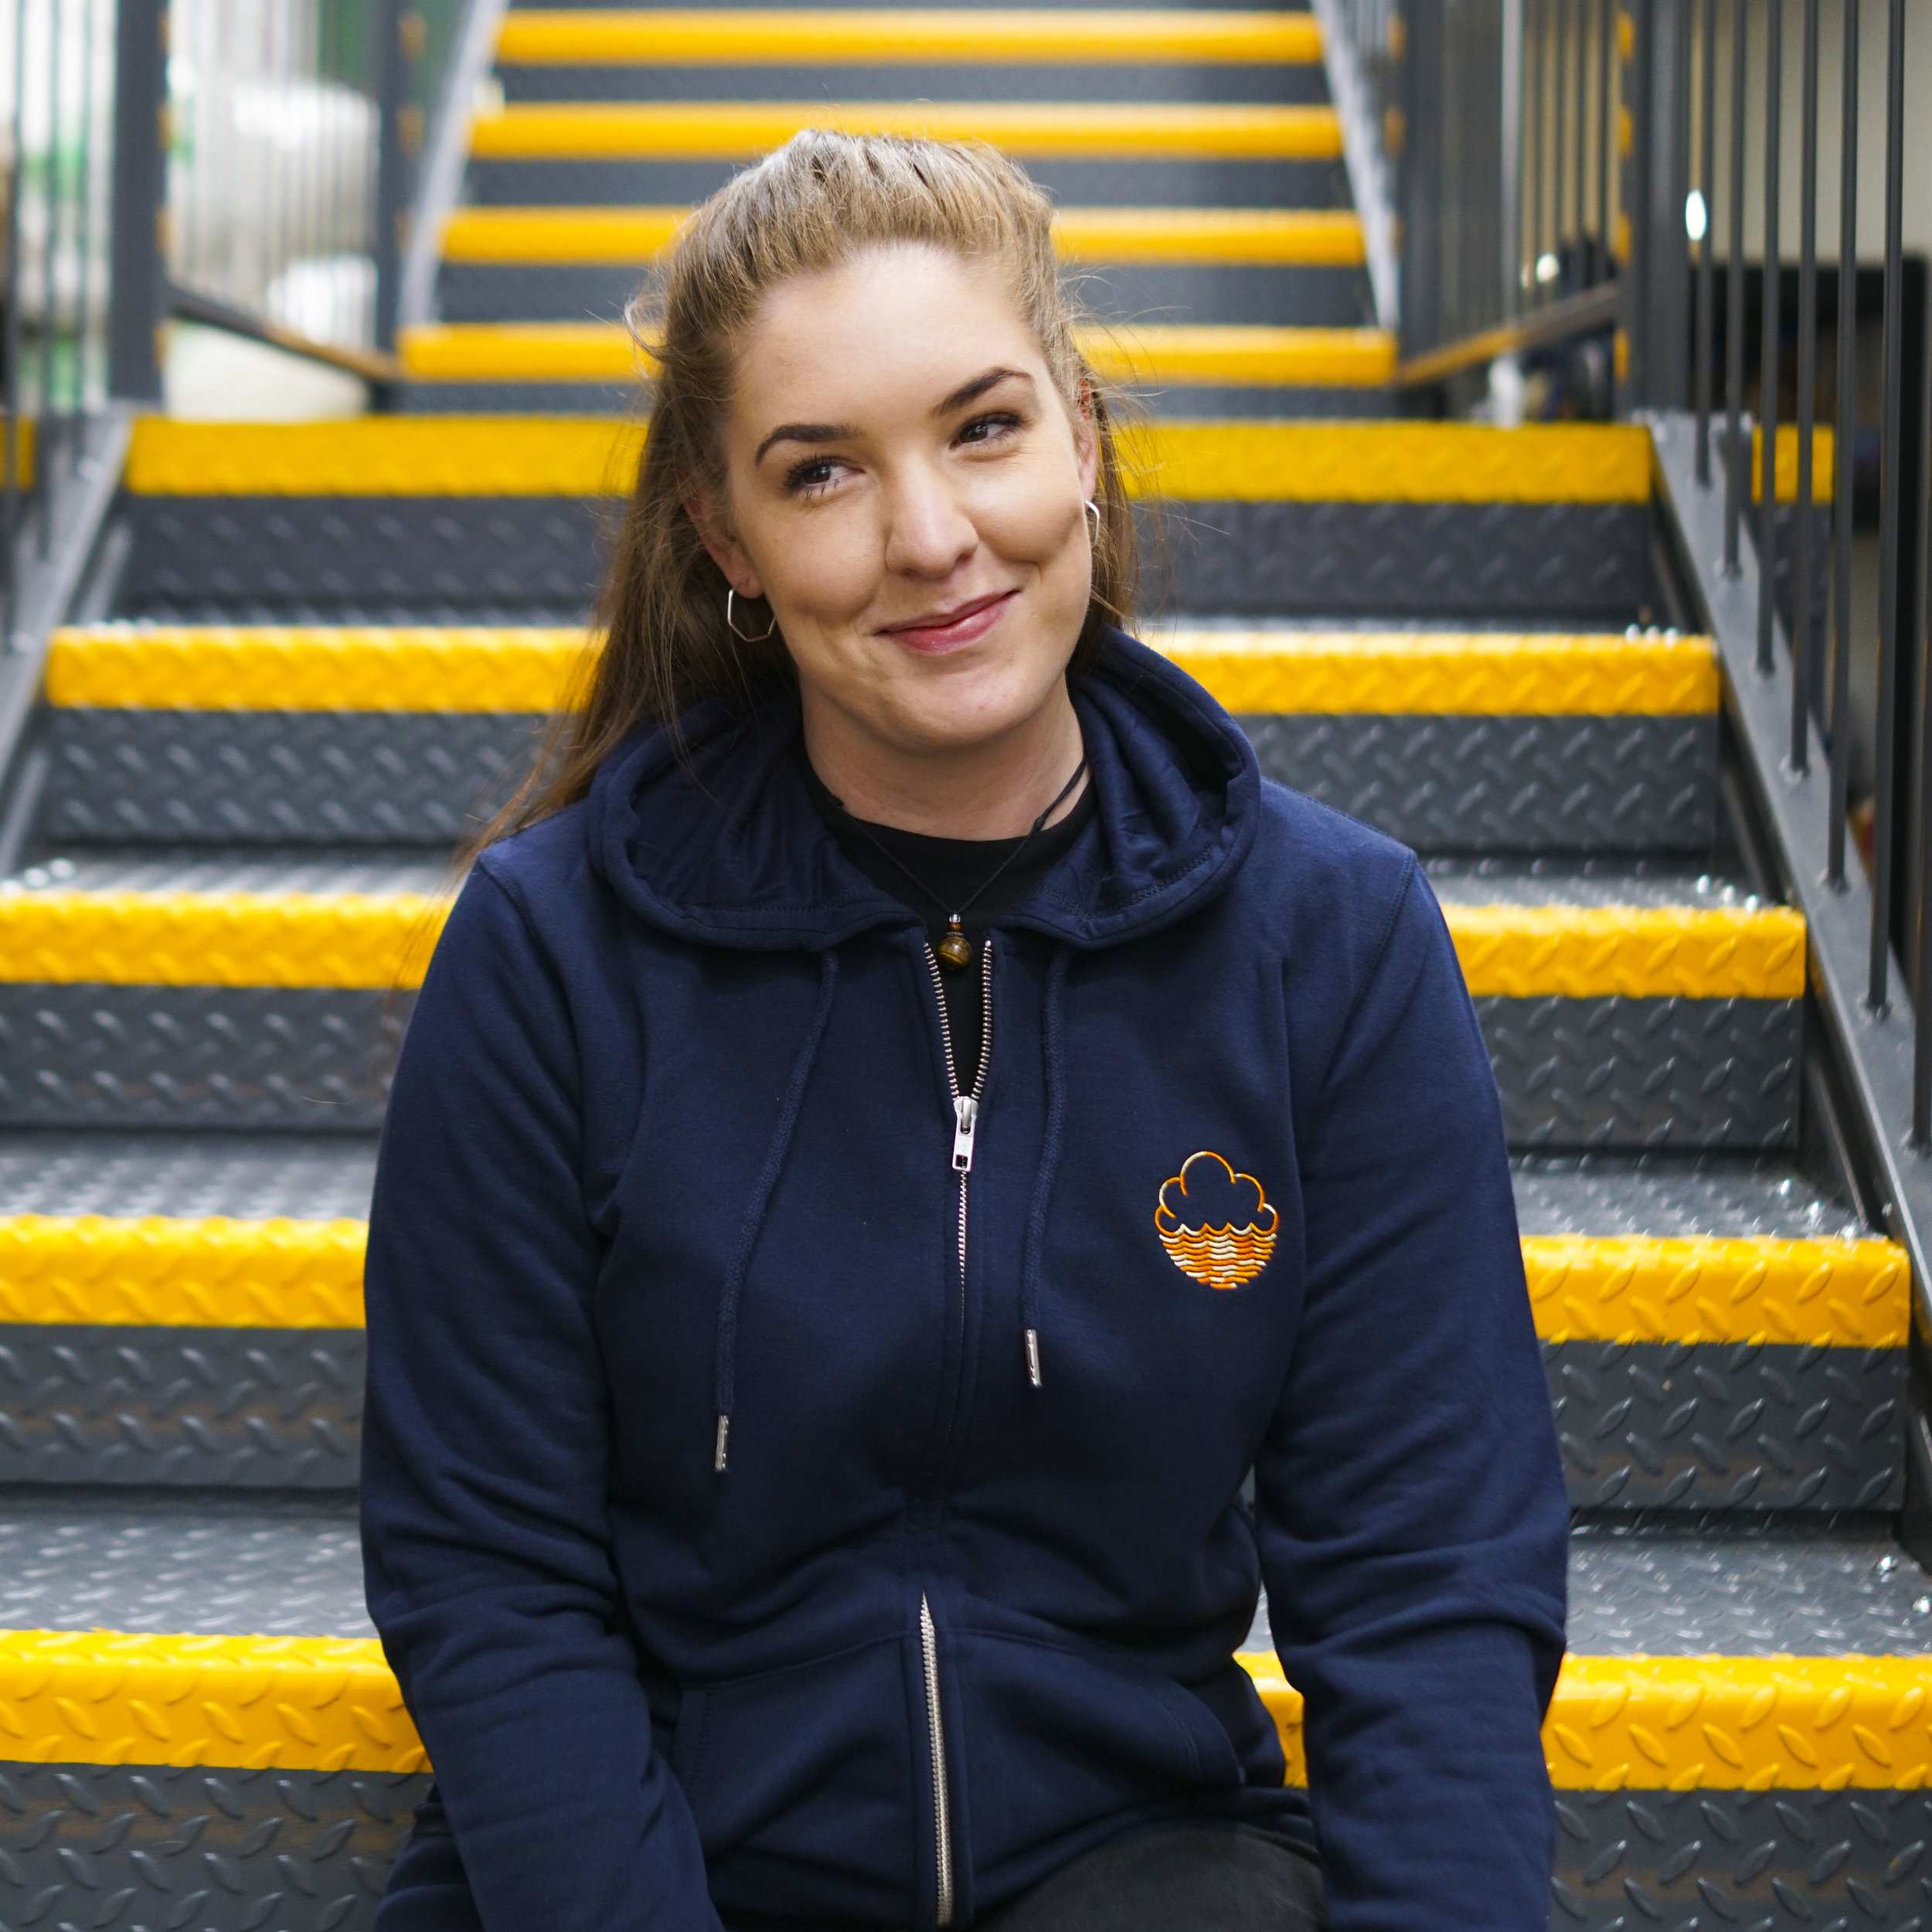 Jessica McCarthy — Financial Officer   My first job was in a bar and it just stuck as I really enjoyed it. I became a manager in a pub in Manchester while I was studying for my degree in Accounting. Once I qualified, I left the beer and hospitality industry but always missed it. Now, working for the brewery, I get the best of both worlds! My first day with Cloudwater was at Friends & Family & Beer, so it's a pretty unconventional start for what most people see as a desk job.  I became more interested in beer while on a trip to Brussels a few years ago, which opened my eyes to a world outside of conventional lager. I had a lot of beer that I enjoyed when I went there in lots of different styles I'd been previously unfamiliar with.   Desert island beer:  Anything pale and hoppy, so I'm in the right place here with Cloudwater! I'm a big fan of IPAs and the DDH beers we do here.